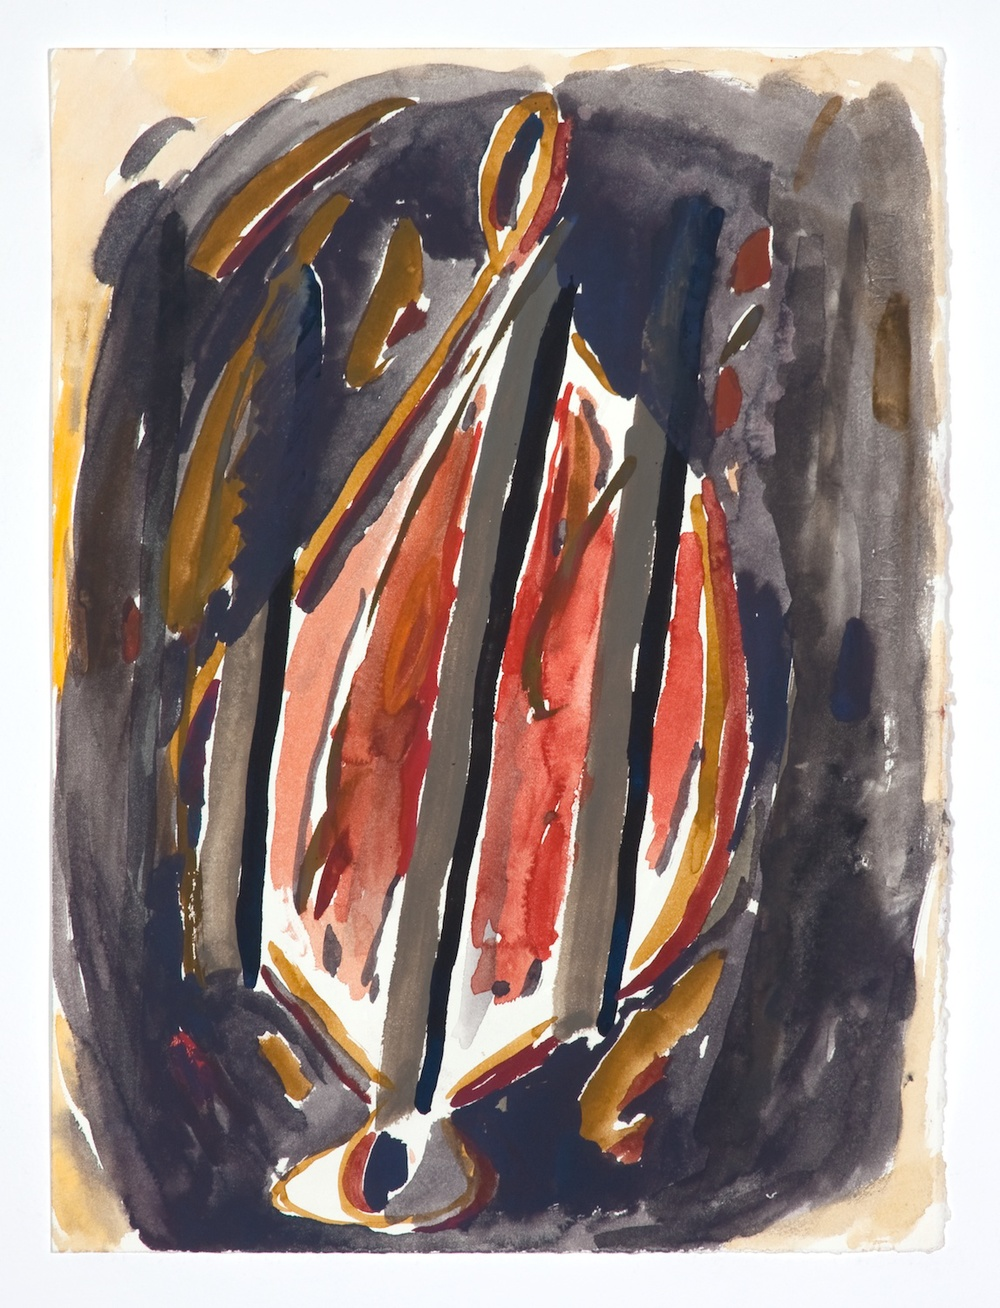 Jon Pestoni  Untitled  2009 Gouache on paper 15h x 11w in JP059